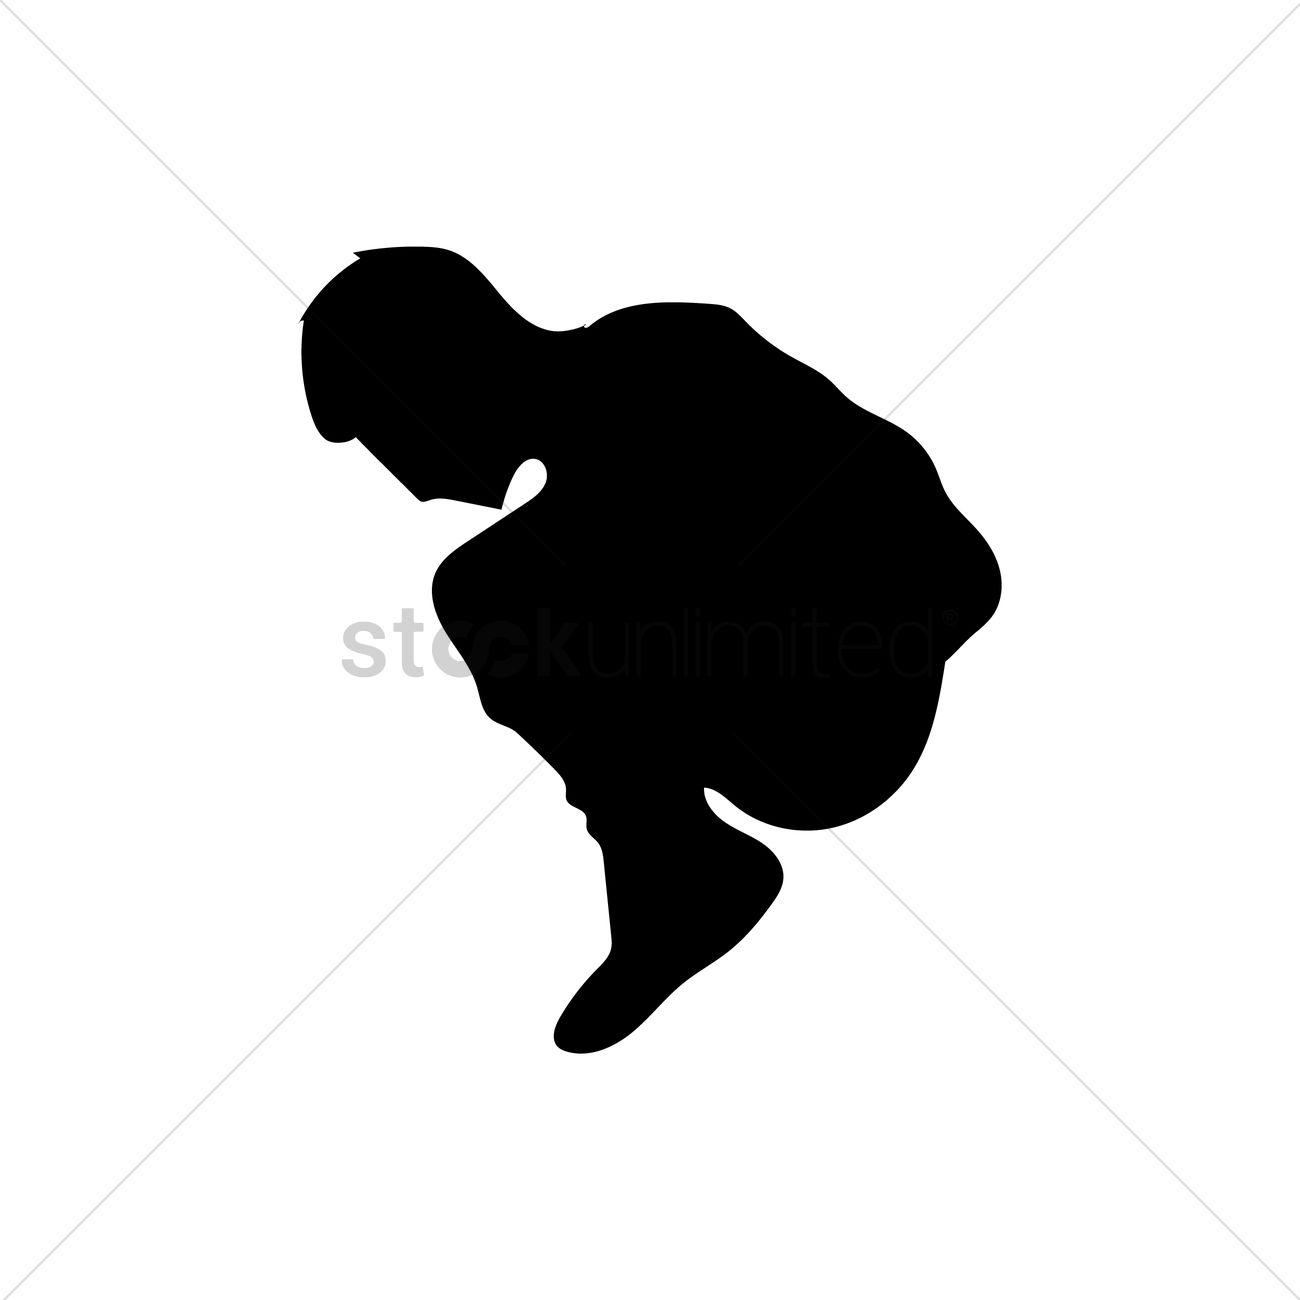 Silhouette Of A Man Sitting Vector Image - 1477703 ...